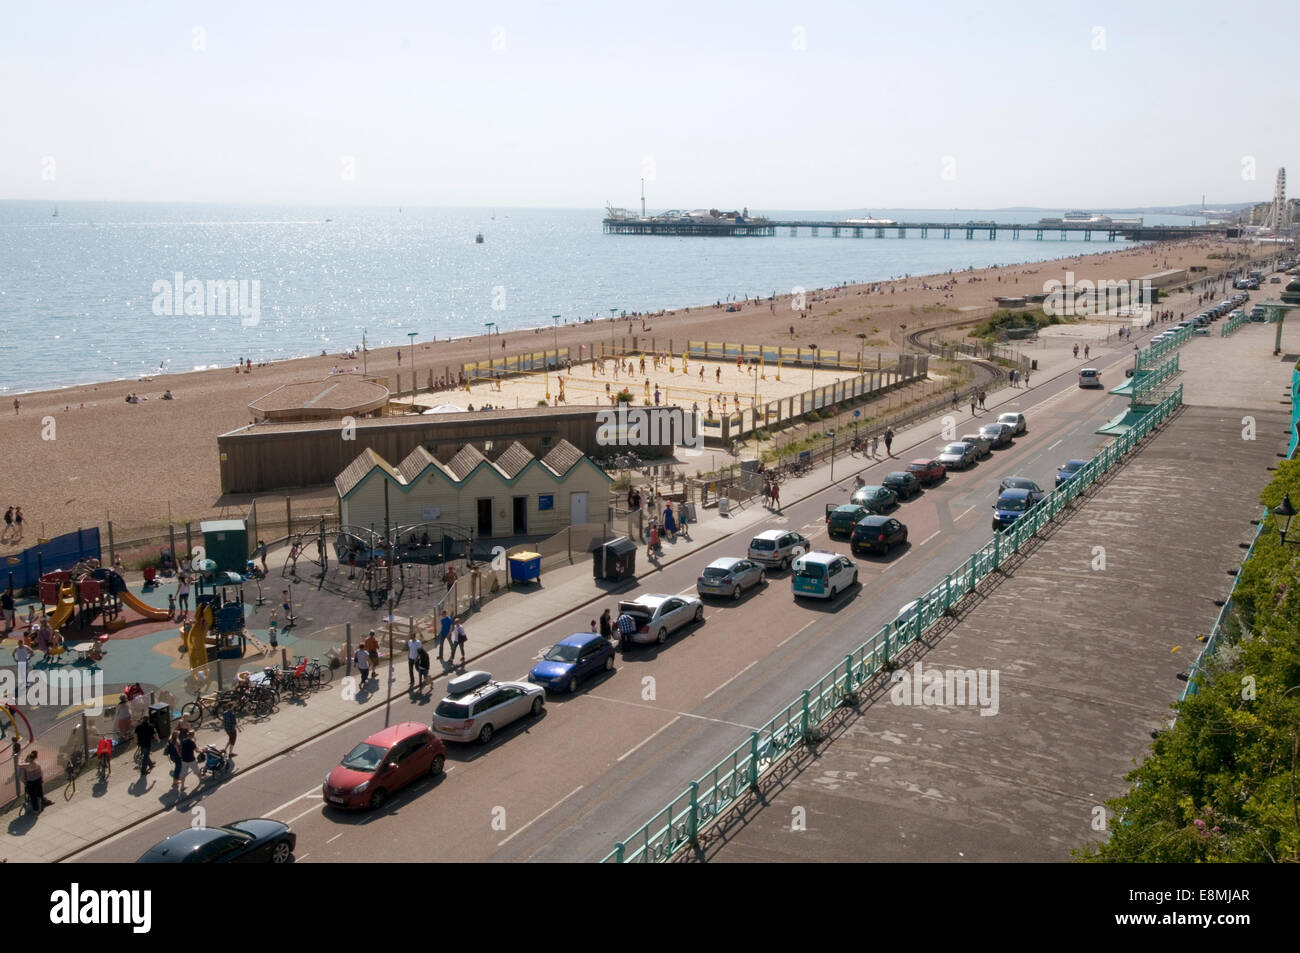 madeira drive brighton beach uk beaches - Stock Image